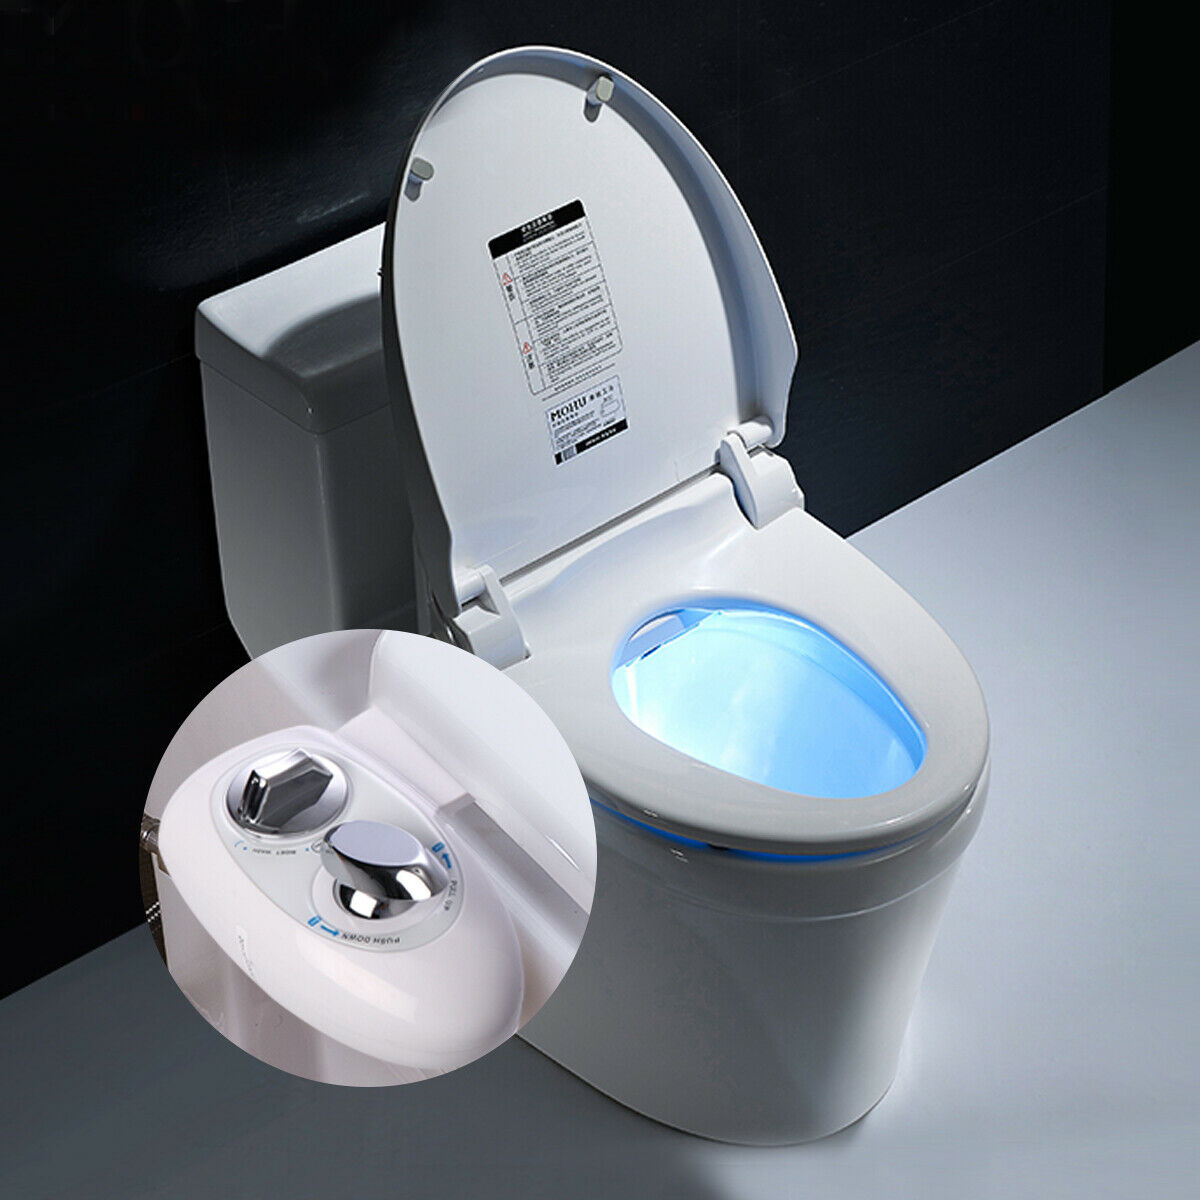 Adjustable Self-Cleaning Nozzle,Non-Electric Water Spray Bidet Toilet Seat - $0.99